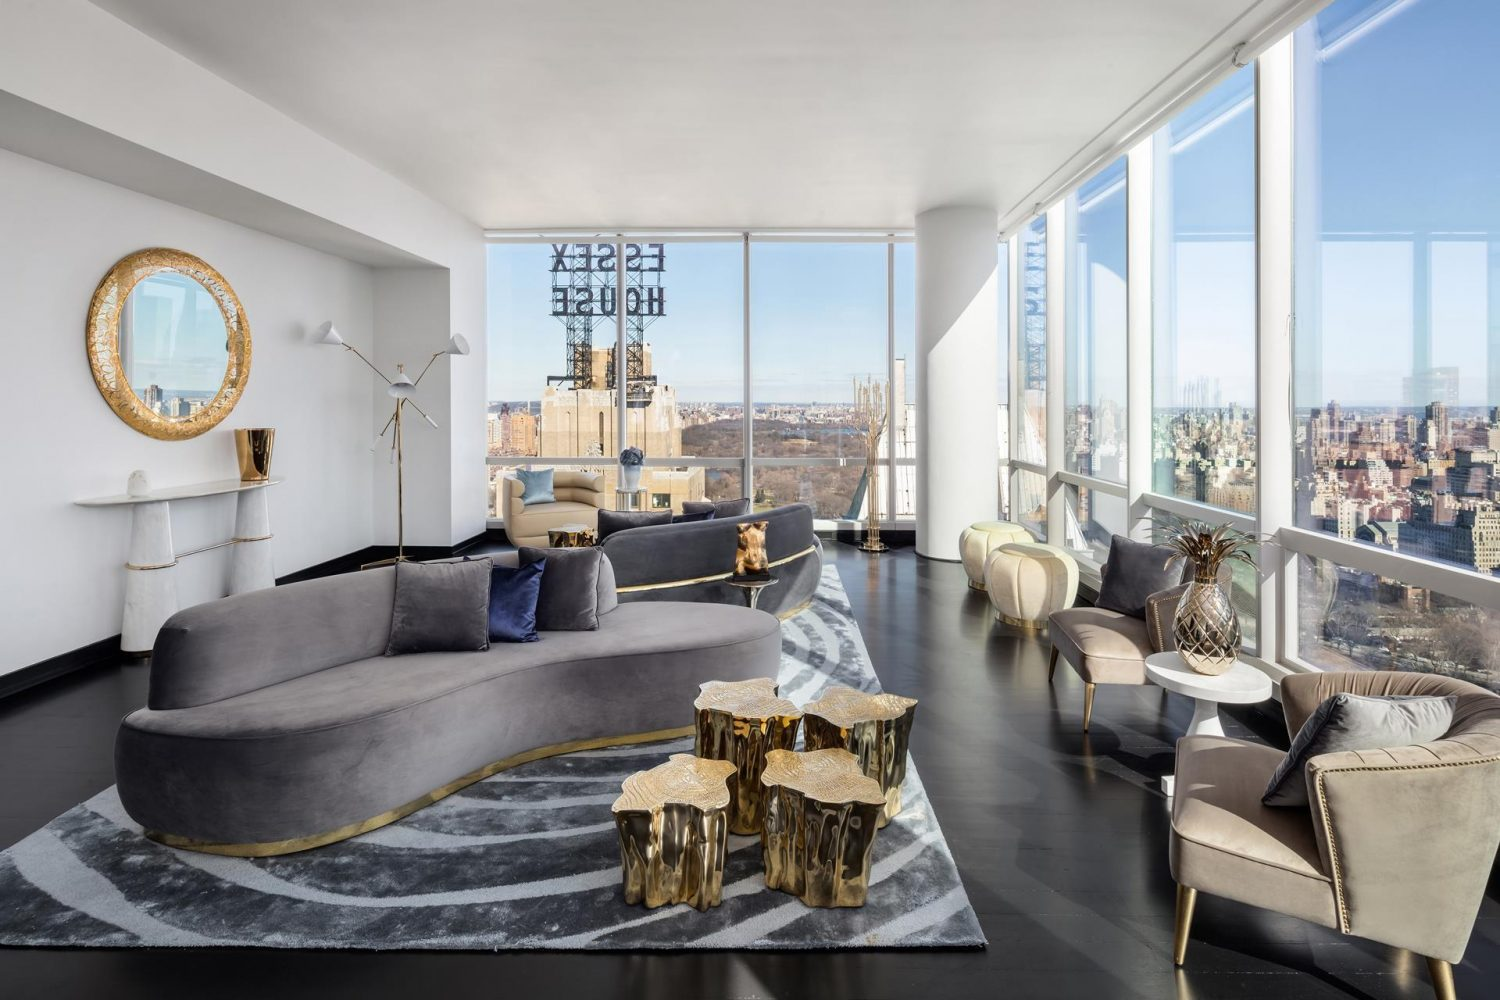 covet nyc Celebrate Design With Covet NYC, The Home Of Your Dreams open uri20200226 9304 1y0k8se scaled